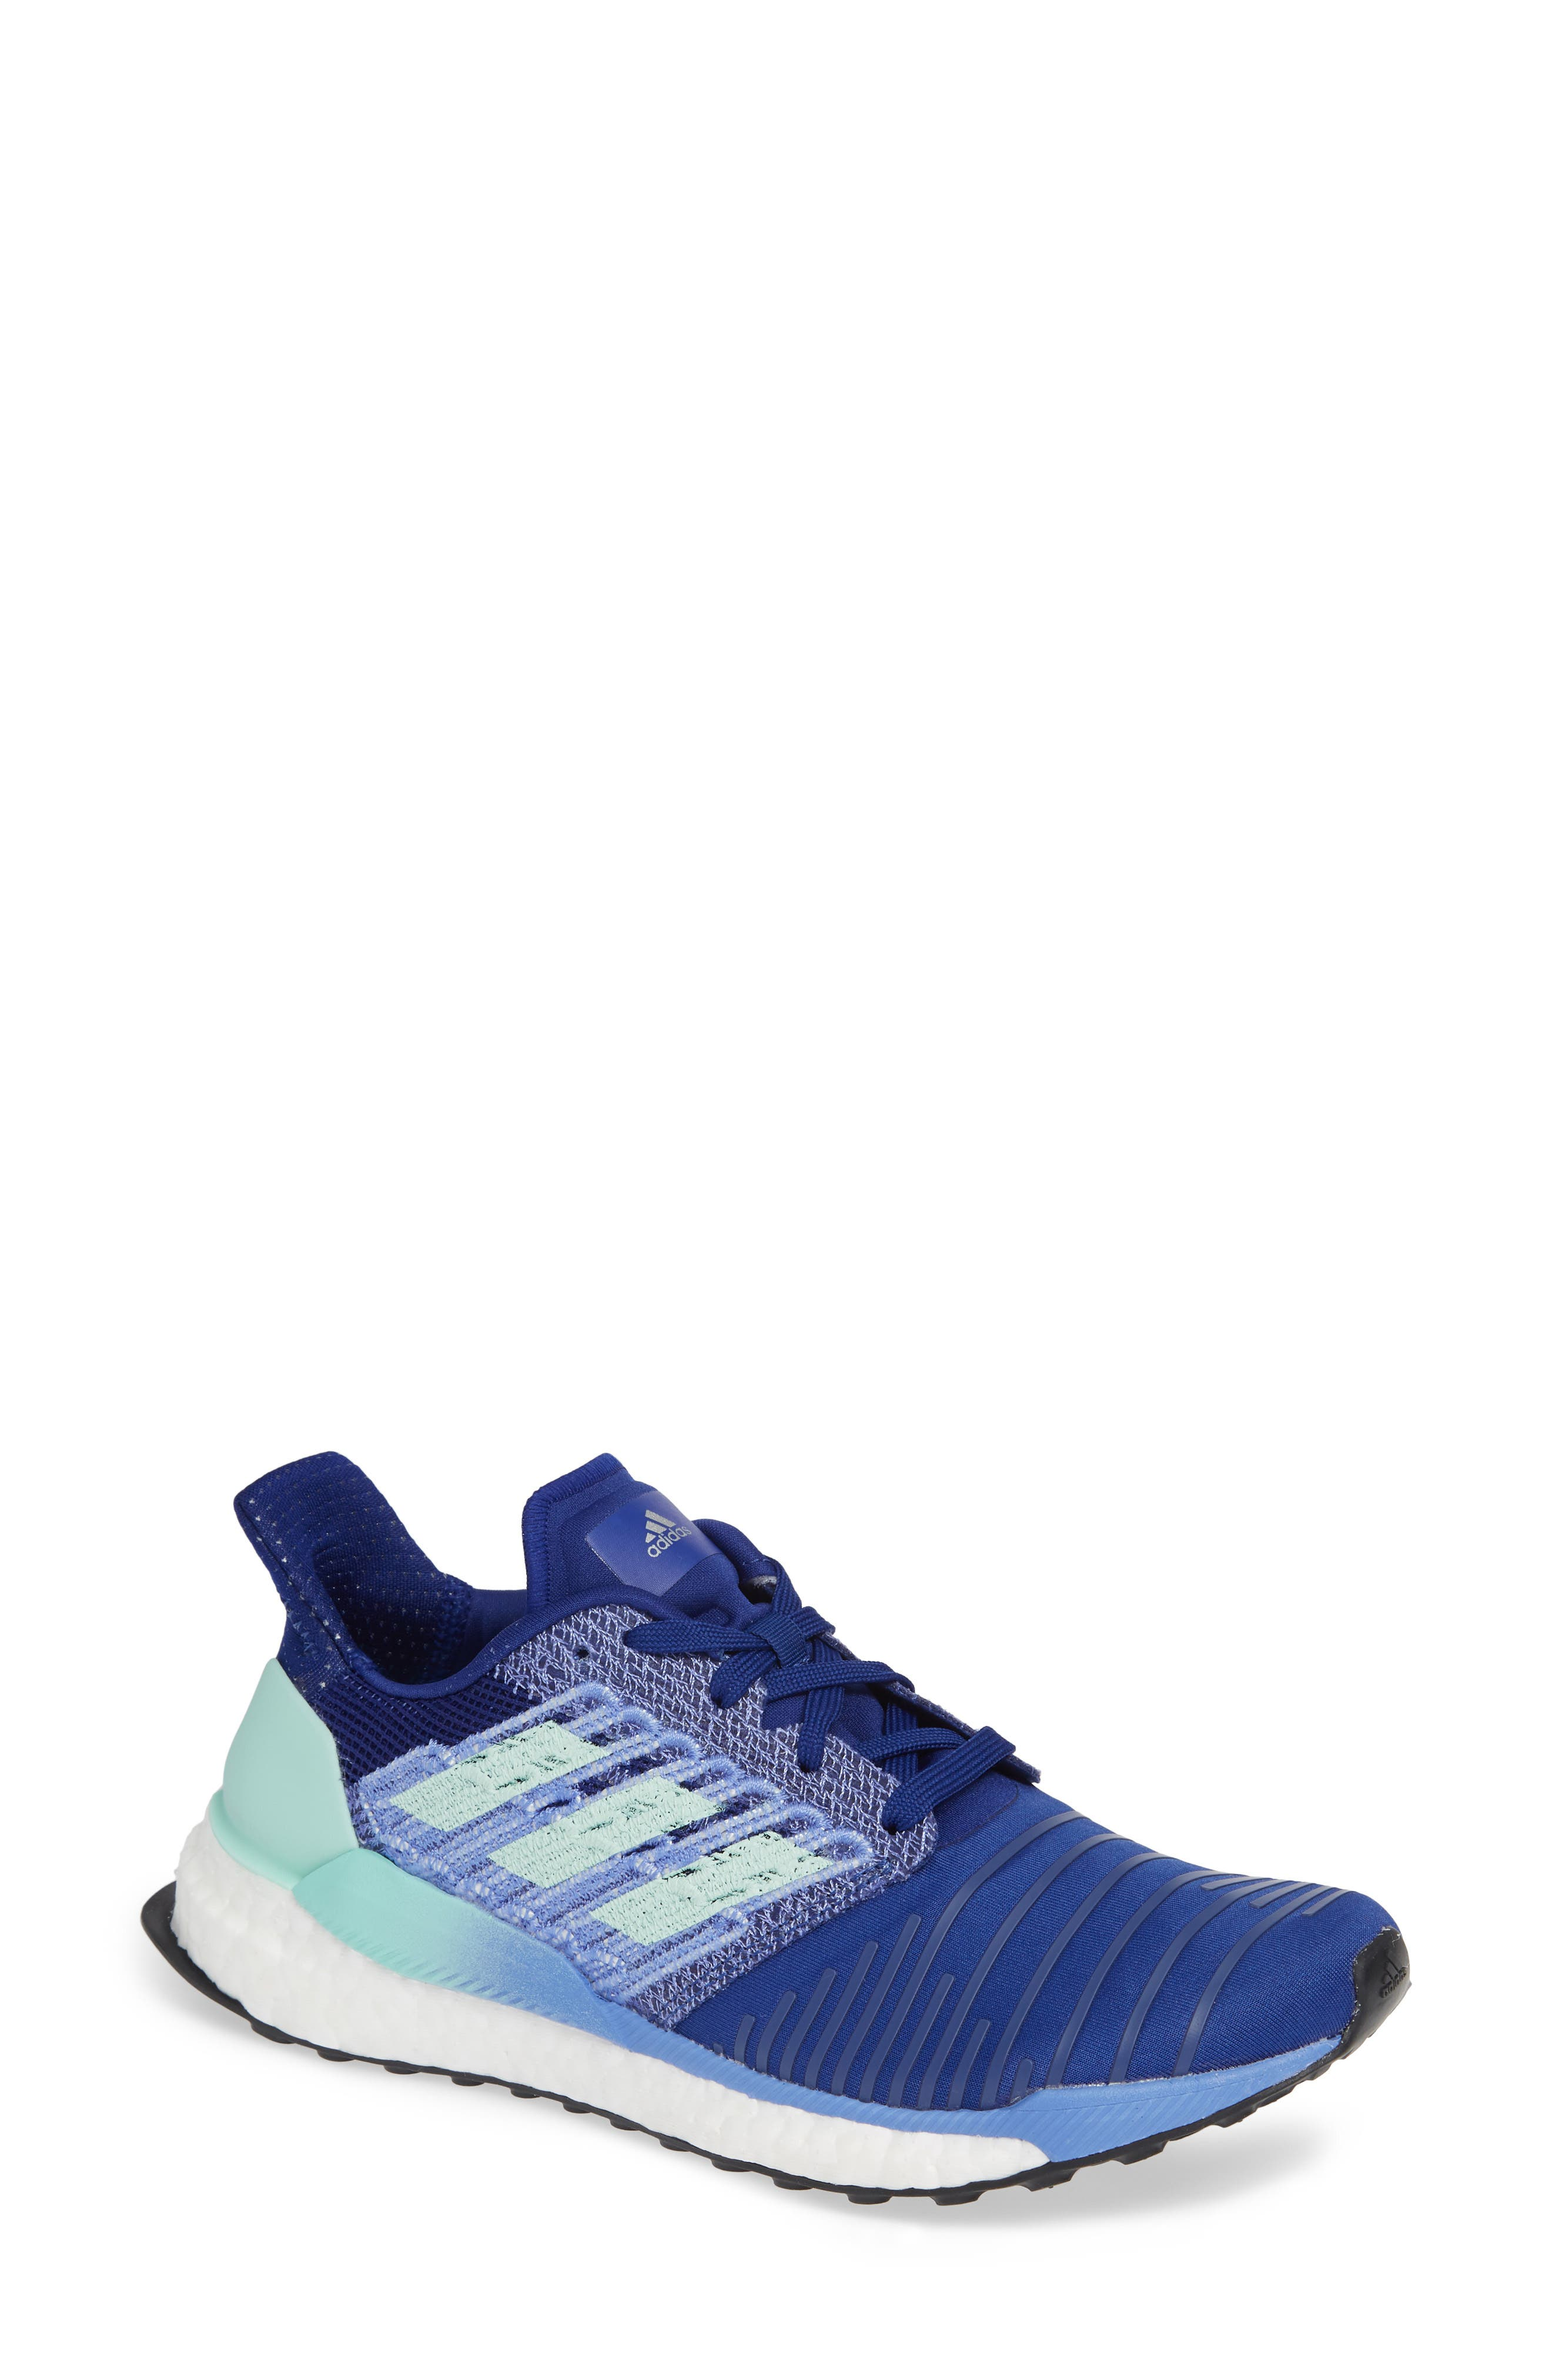 Solarboost Running Shoe,                             Main thumbnail 1, color,                             MYSTERY INK/ CLEAR MINT/ LILAC